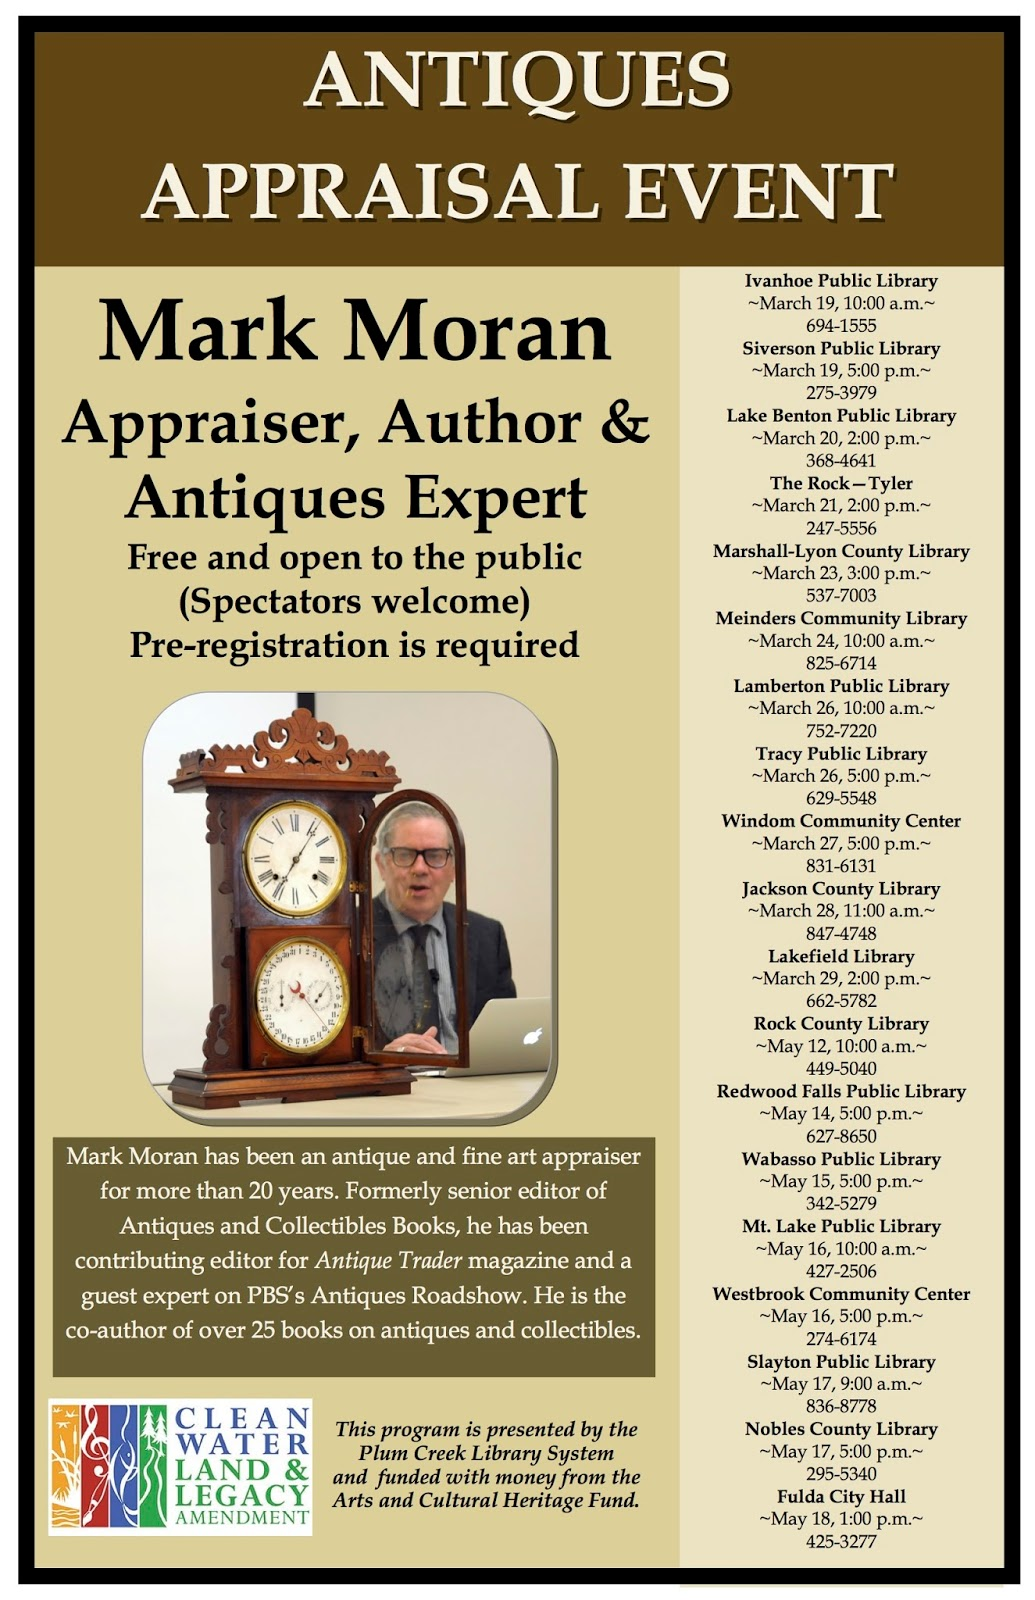 Mark F  Moran Appraisals: Antique Appraisal Events